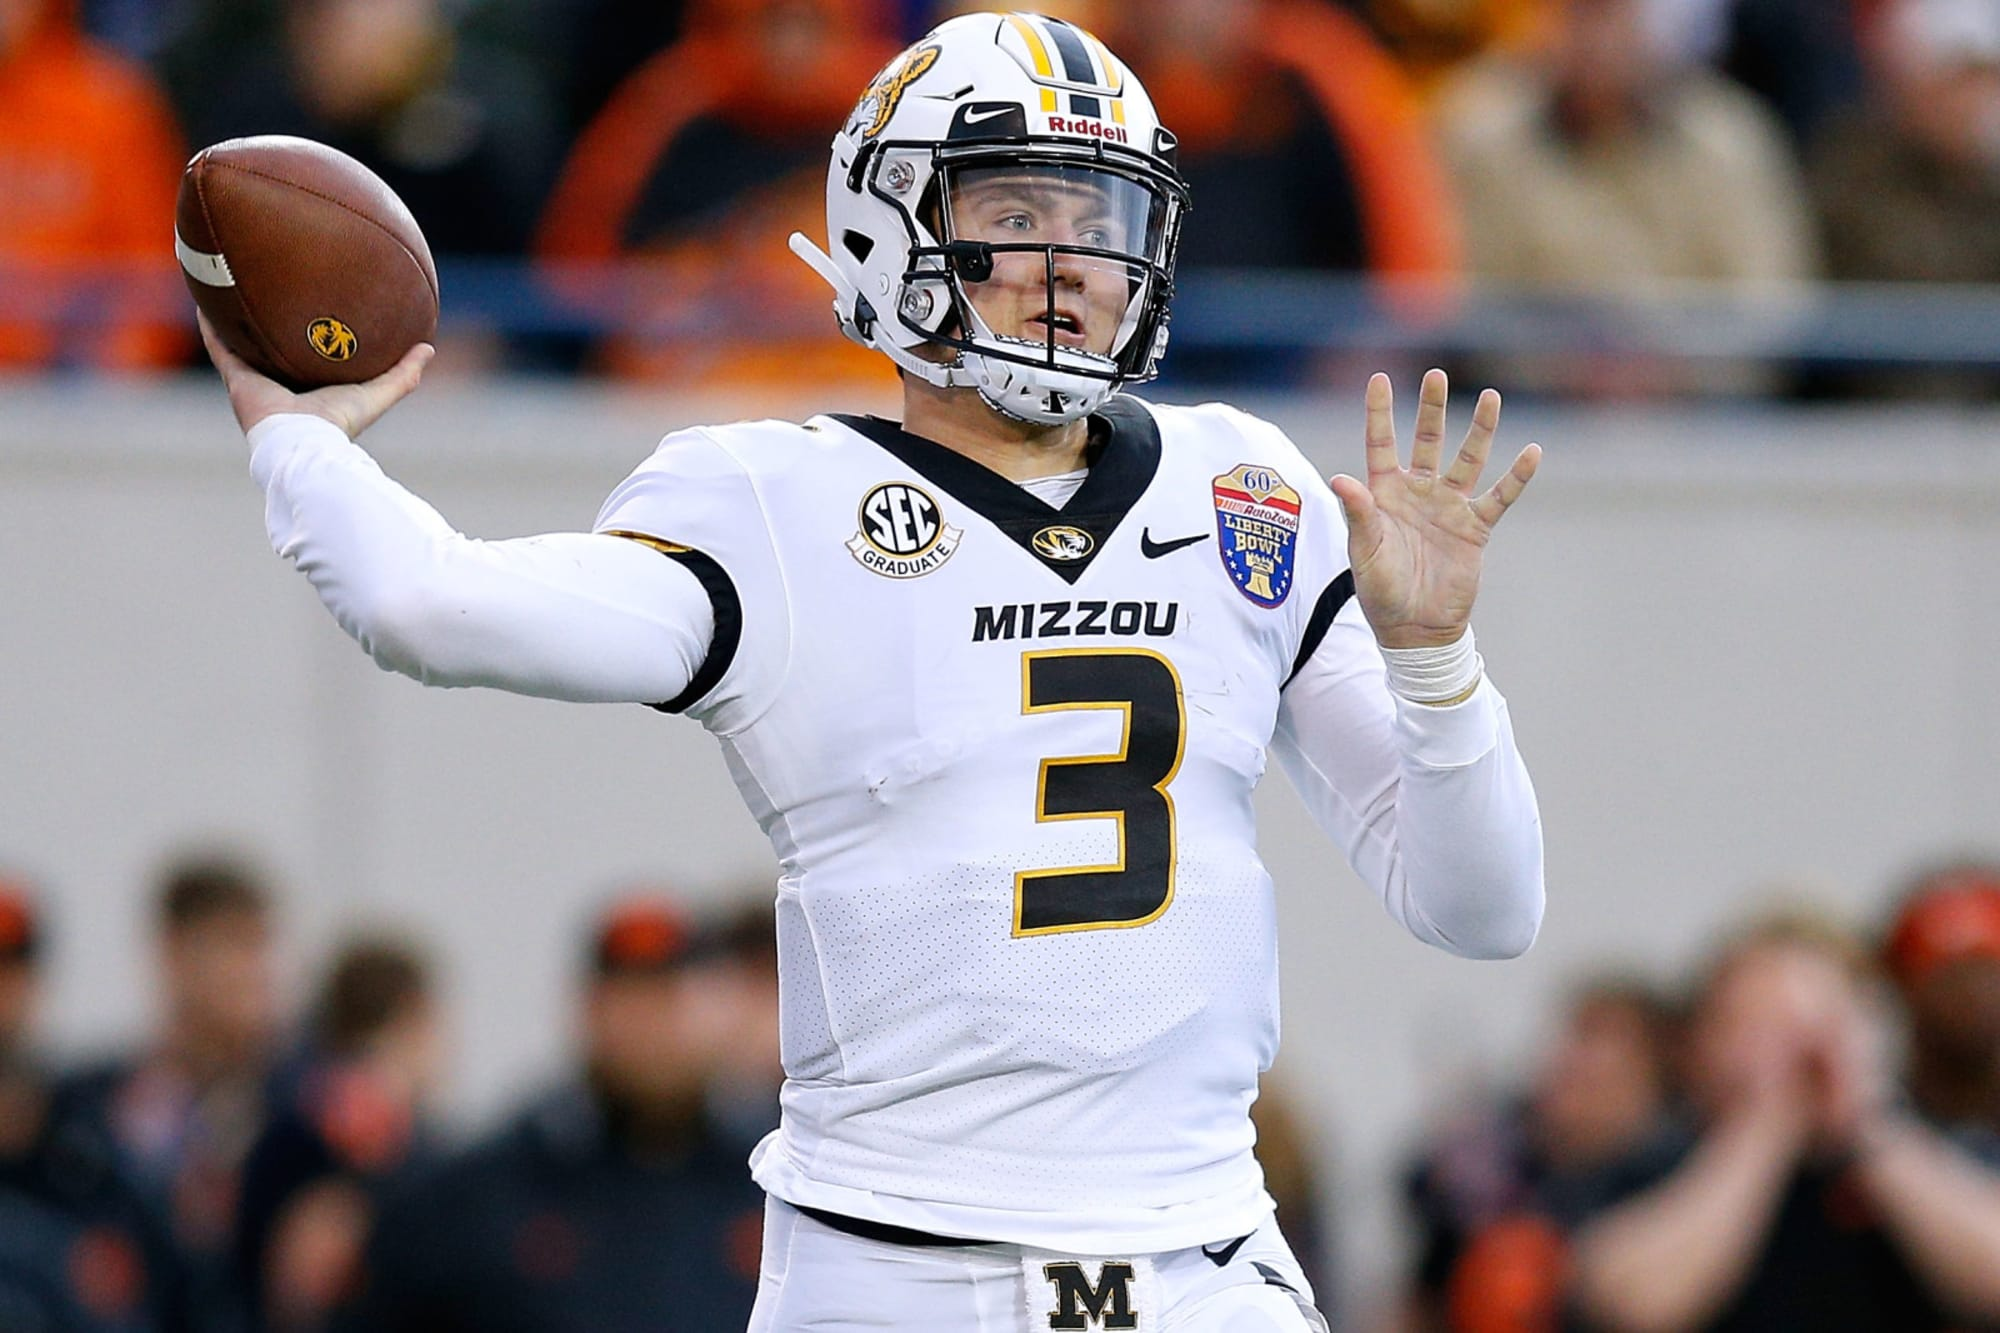 Mizzou Football Drew Lock Era Ends With Few Tangible Results